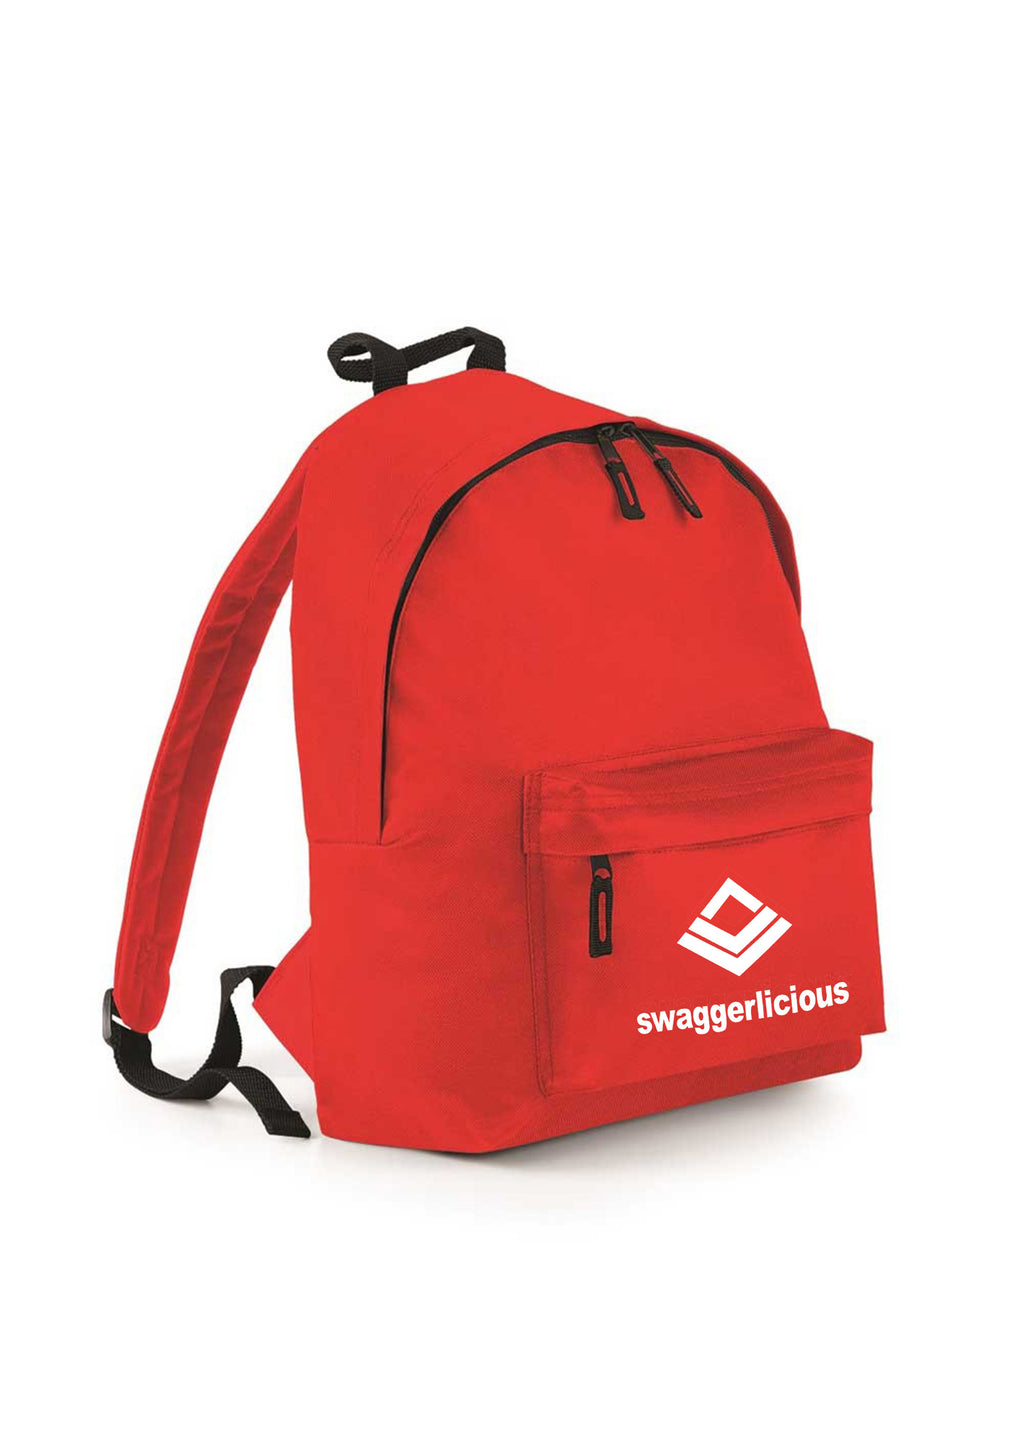 Swaggerlicious Bright Red Backpack - swaggerlicious-clothing.com